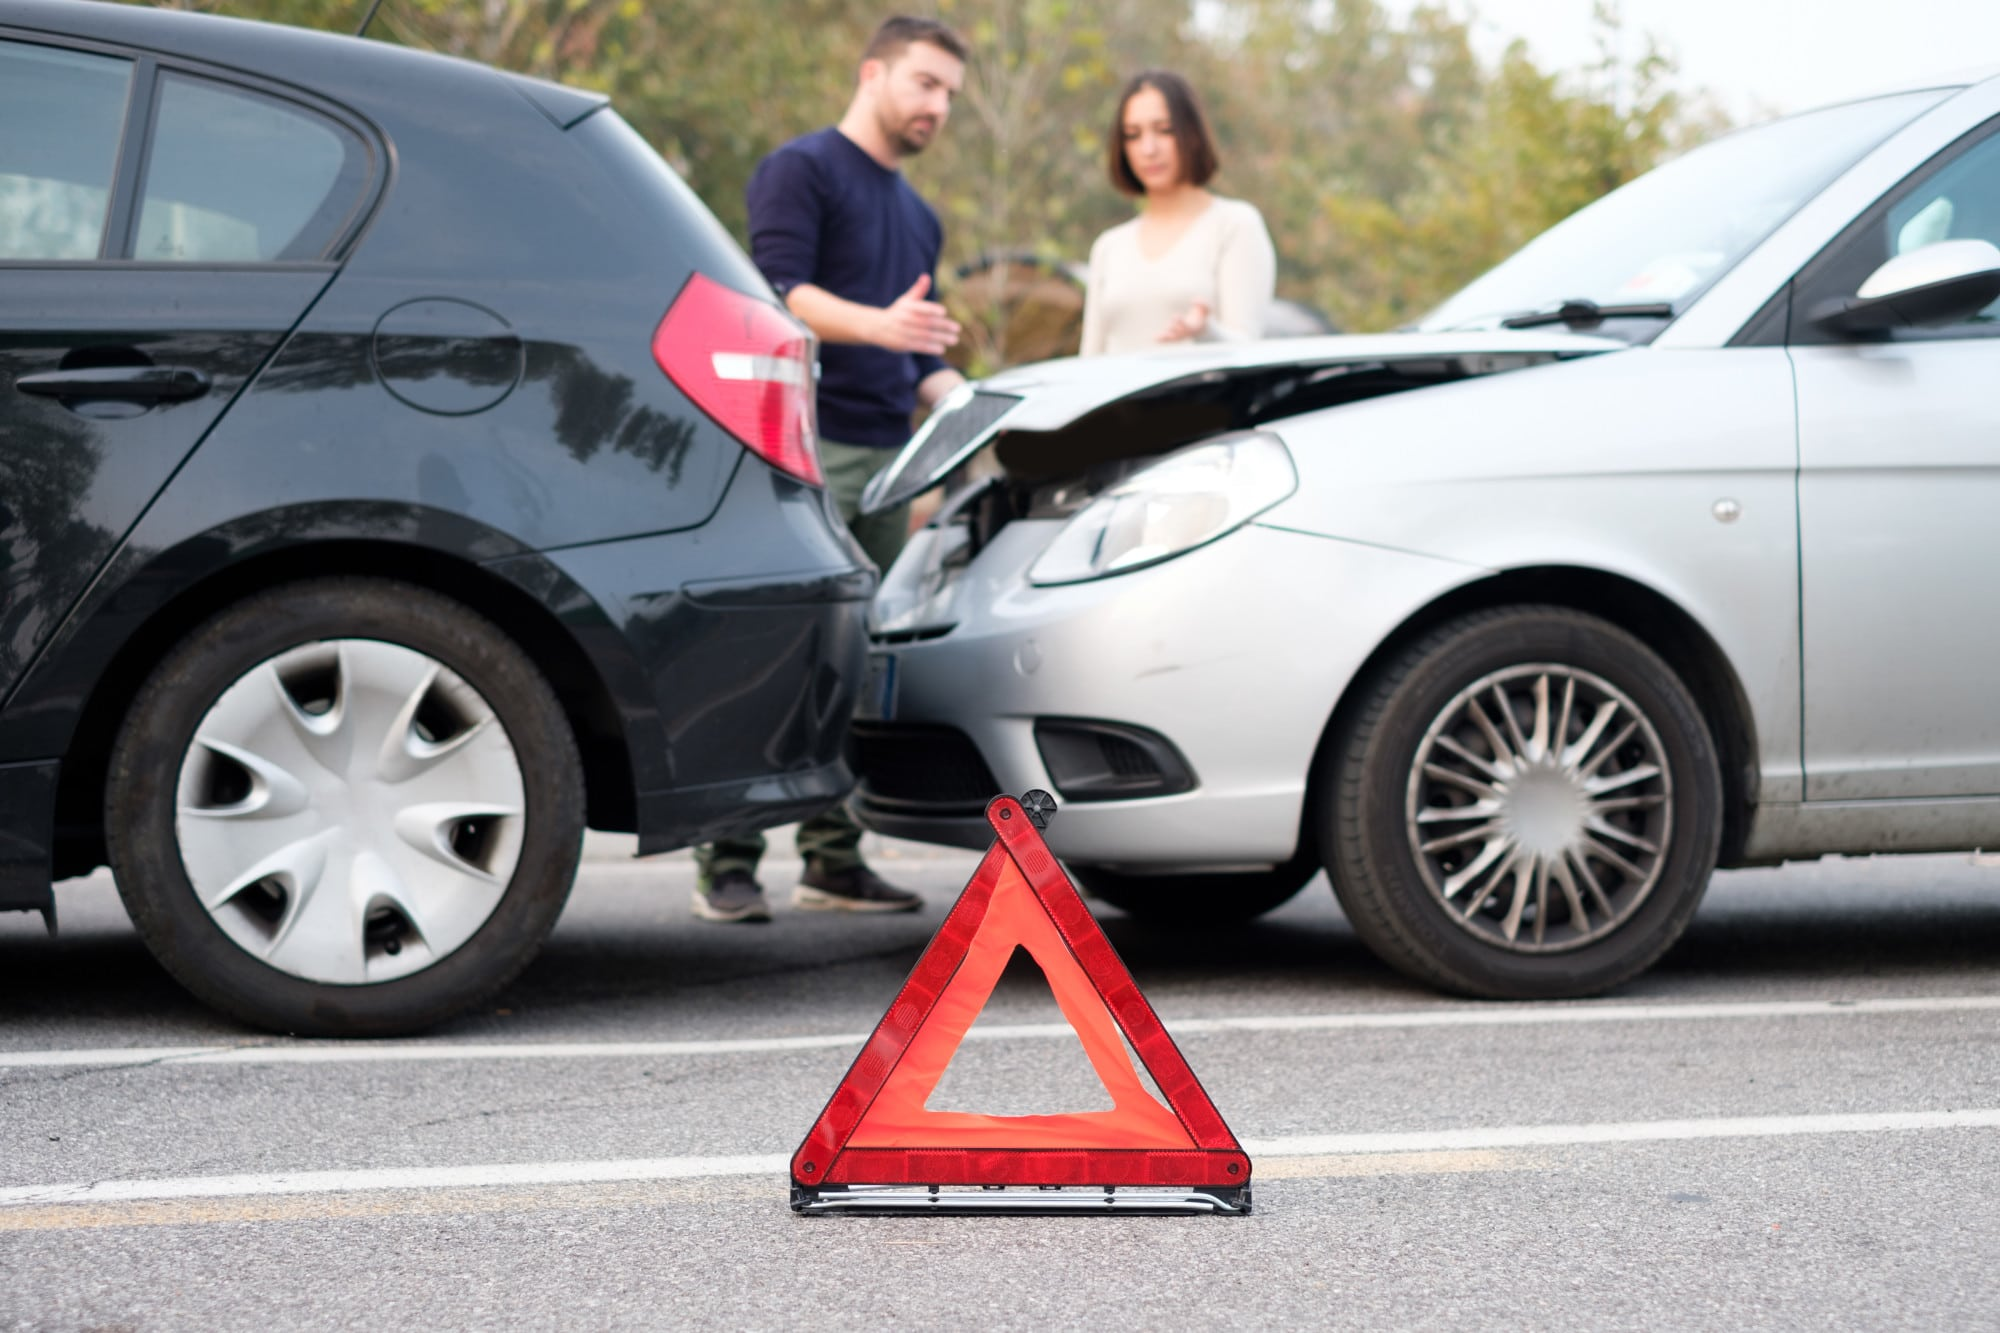 New Jersey Auto Accident Doctor